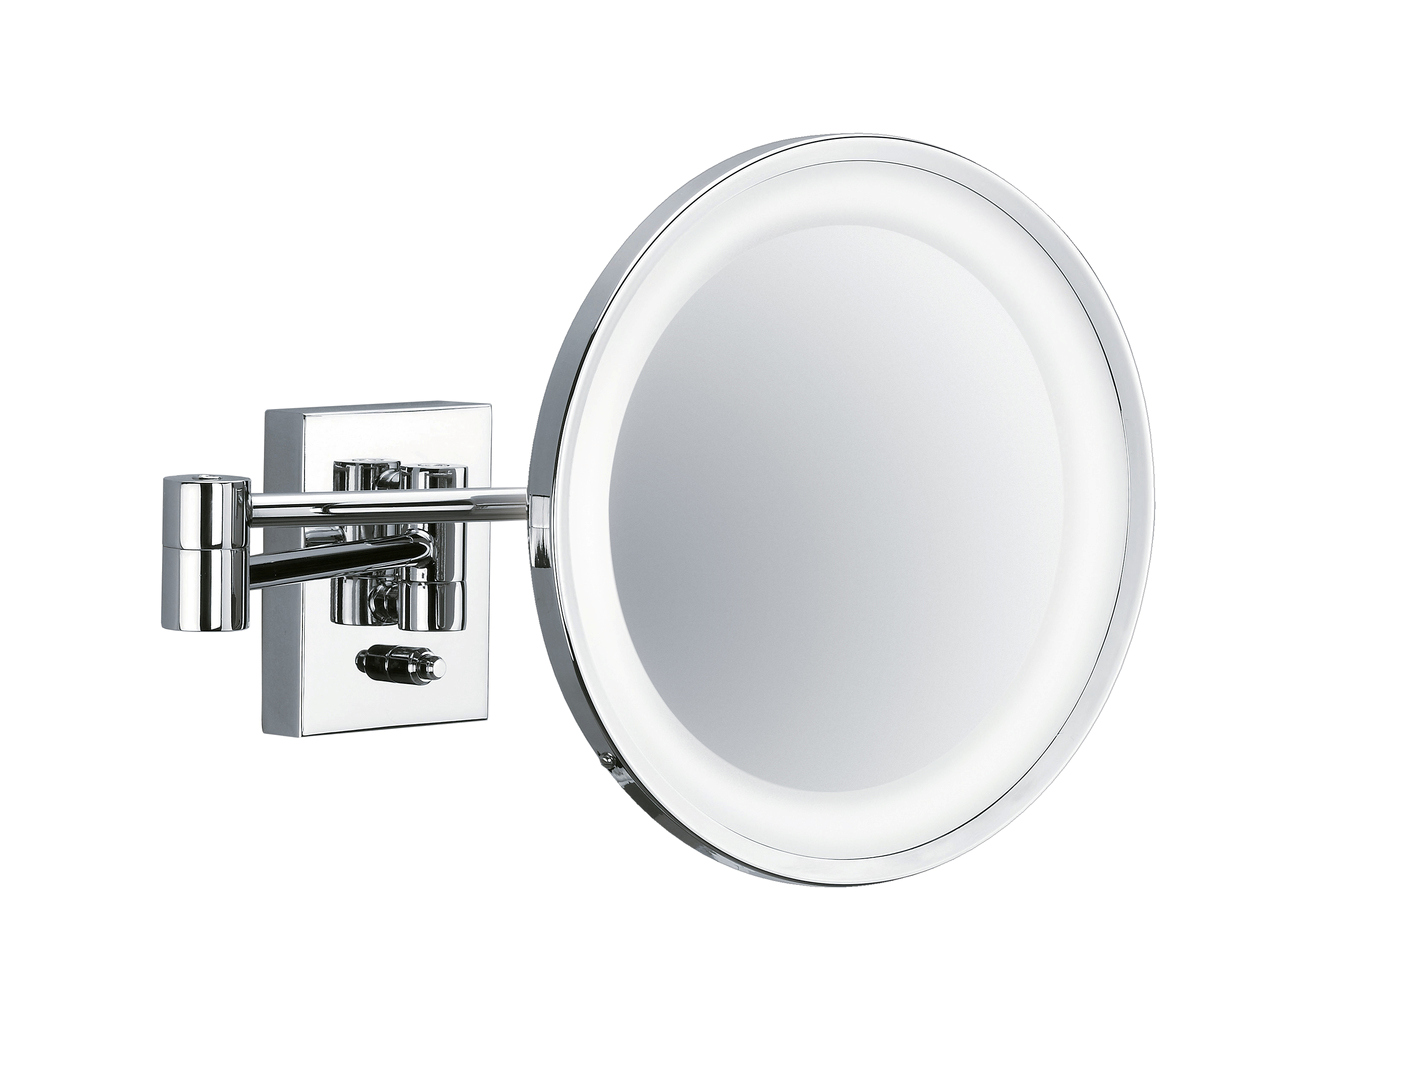 Decor Walther 0102000 DW-BS 40 PL Cosmetic Mirror Illuminated - Chrome